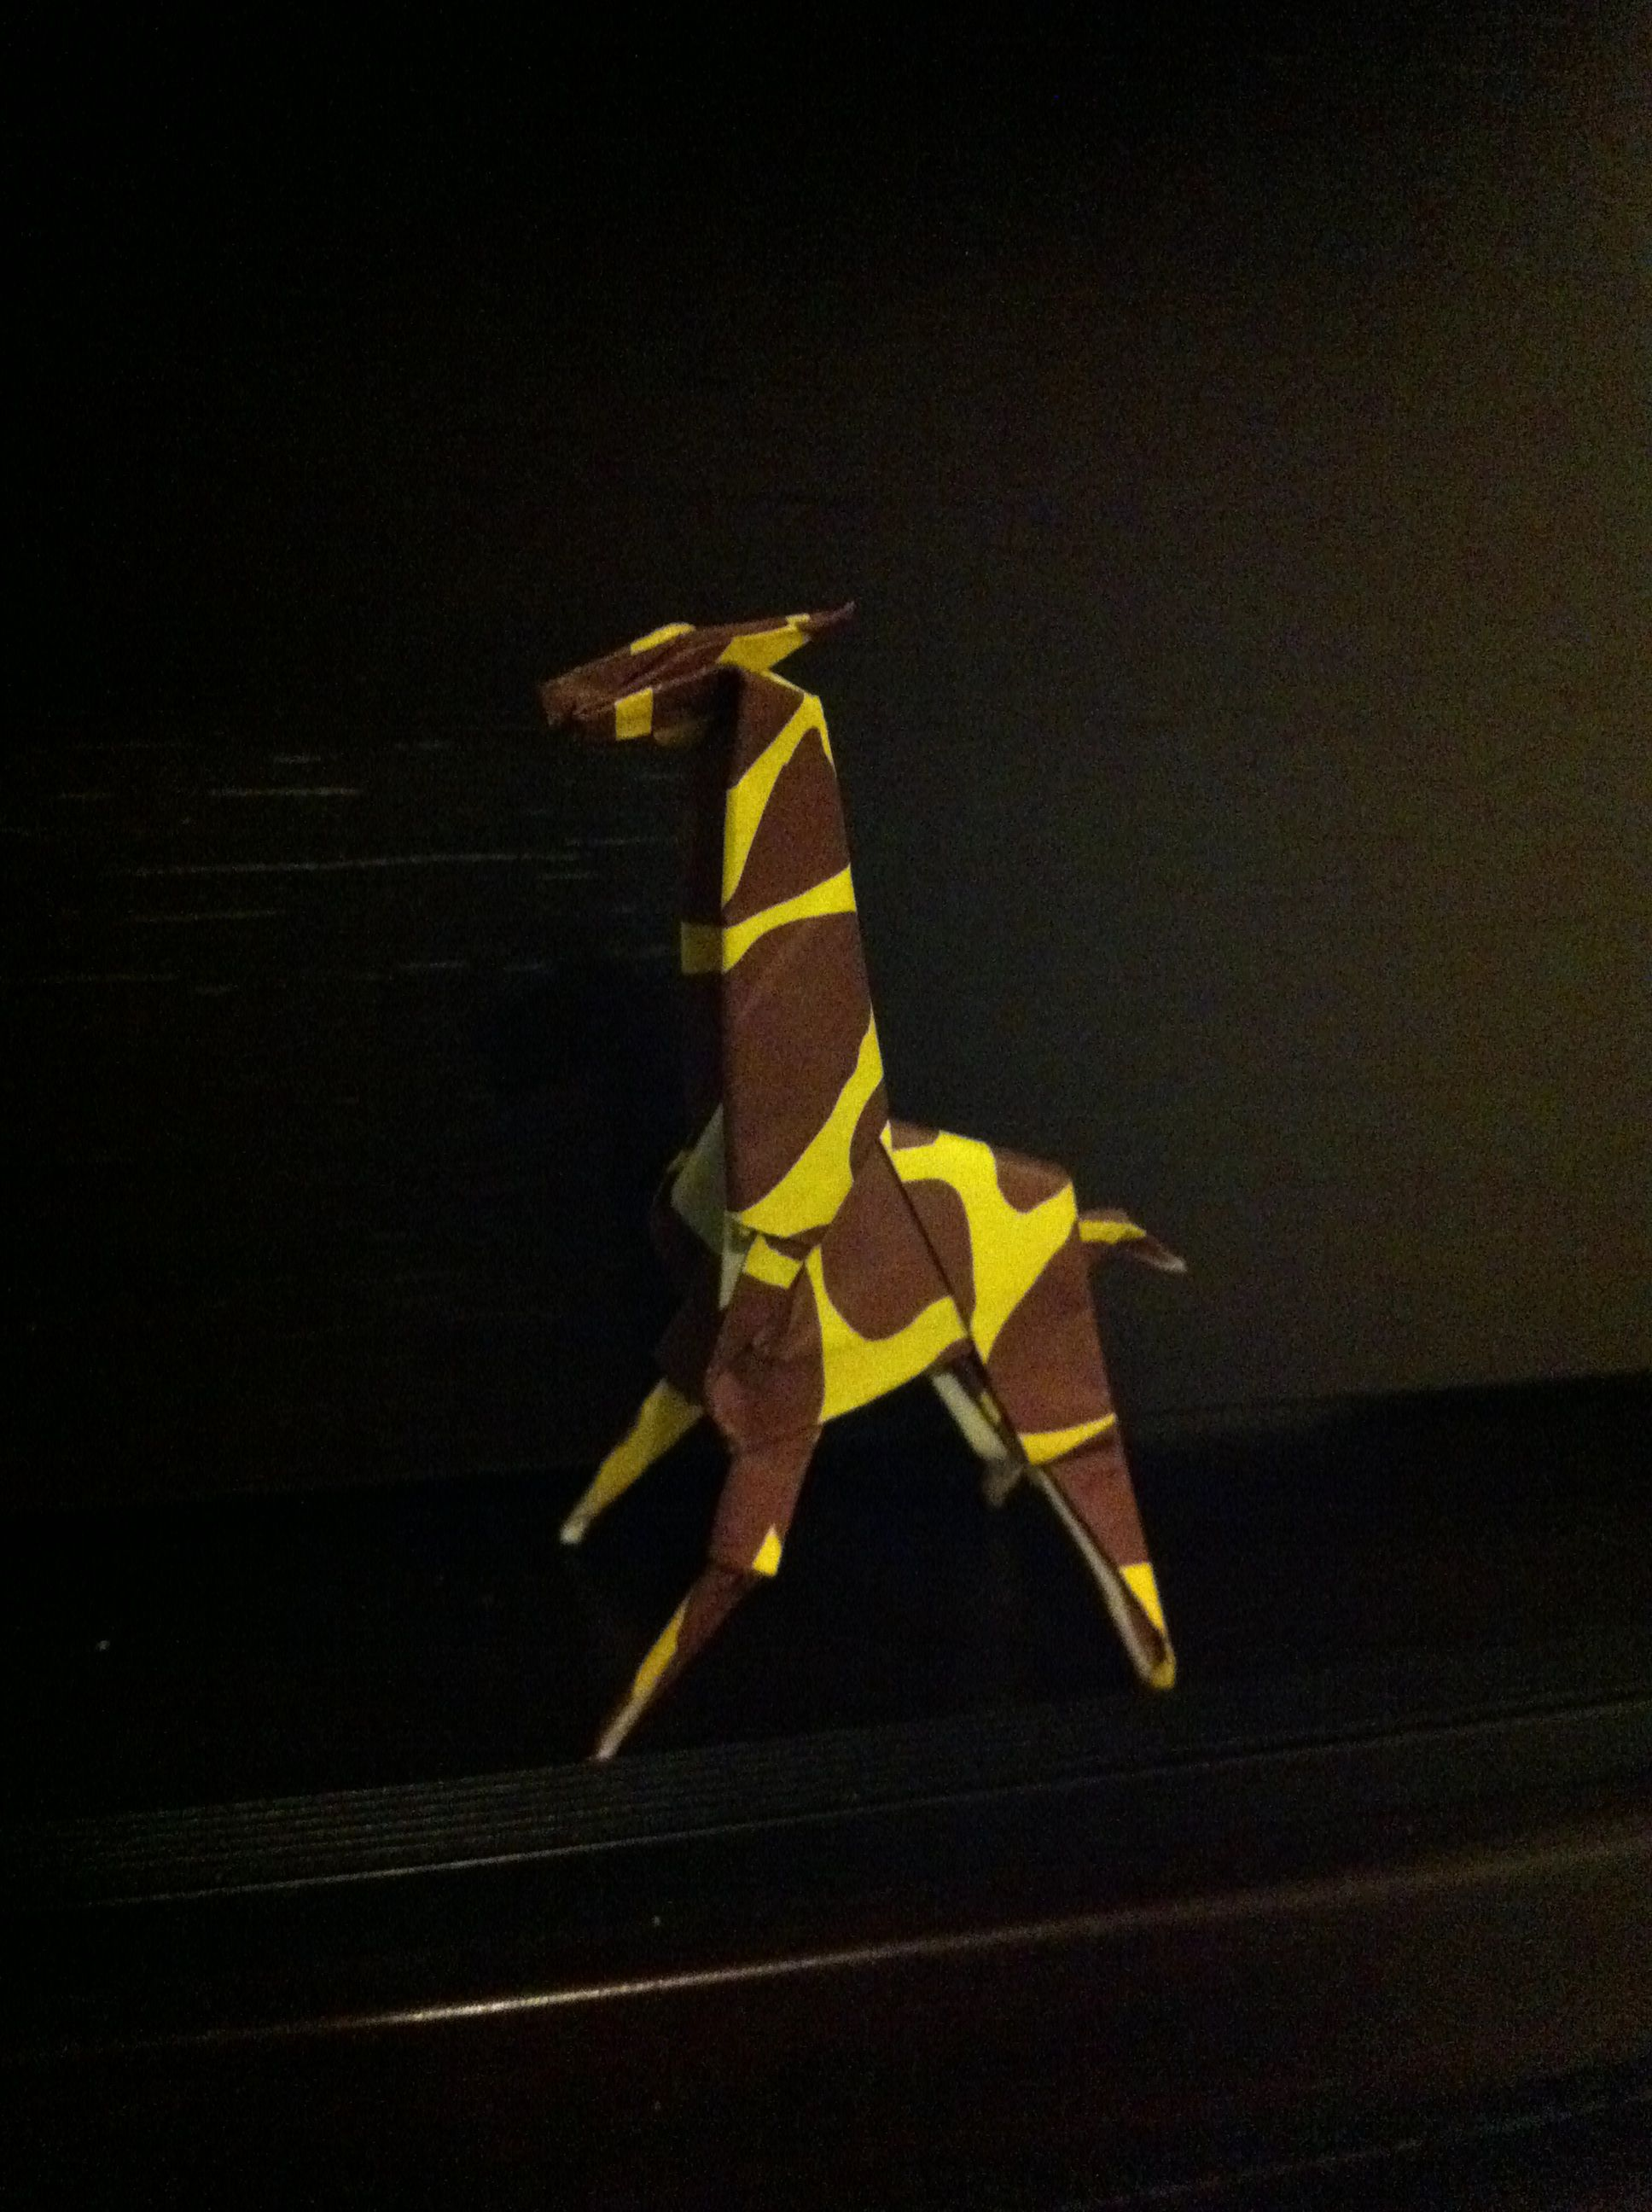 Origami giraffe designed by Peter Engel. Folded by ty 2014 ... - photo#18